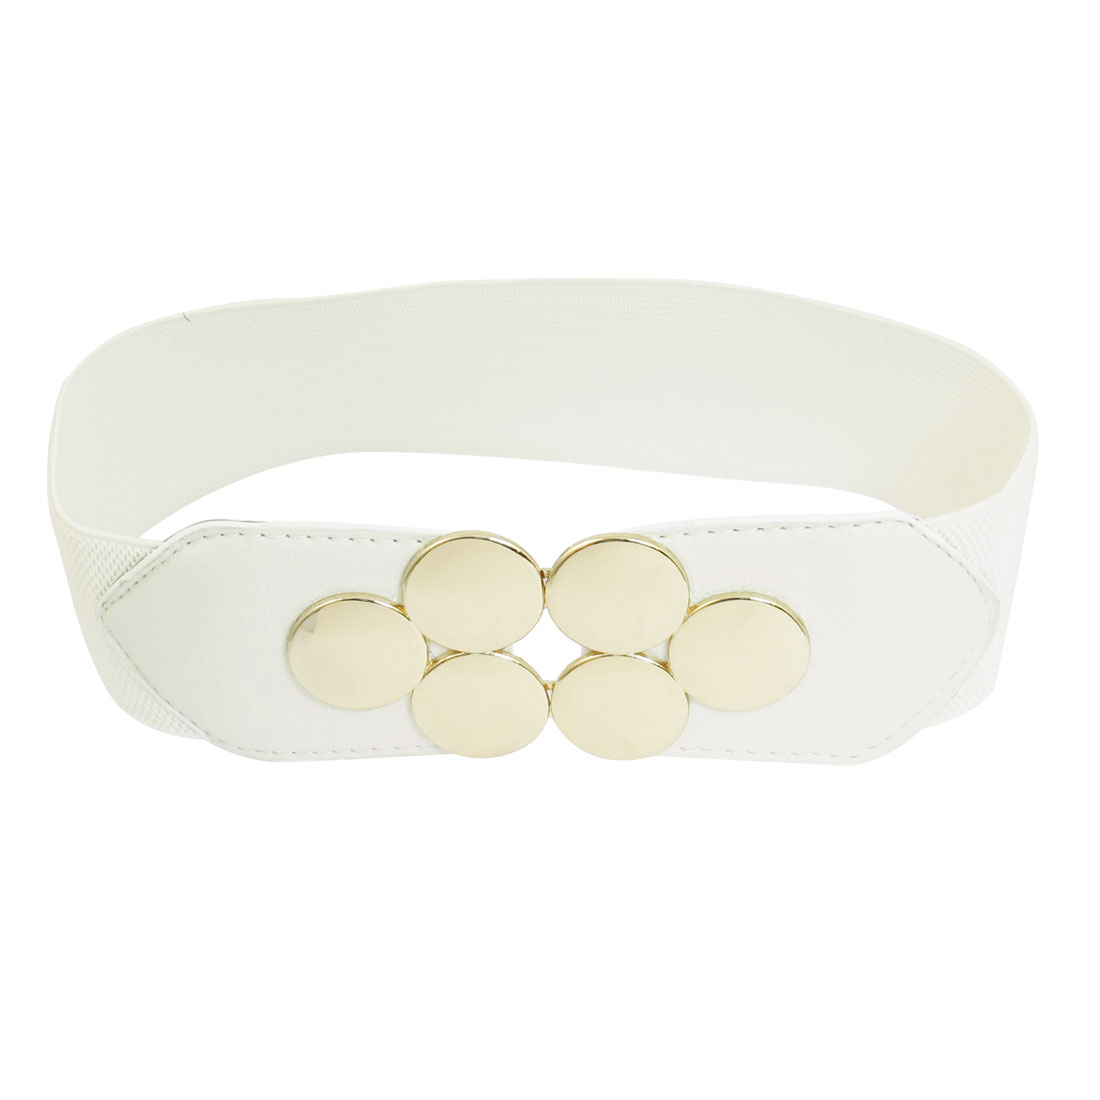 6-Round Detail Interlocking Buckle Stretchy Belt Waistband White for Ladies